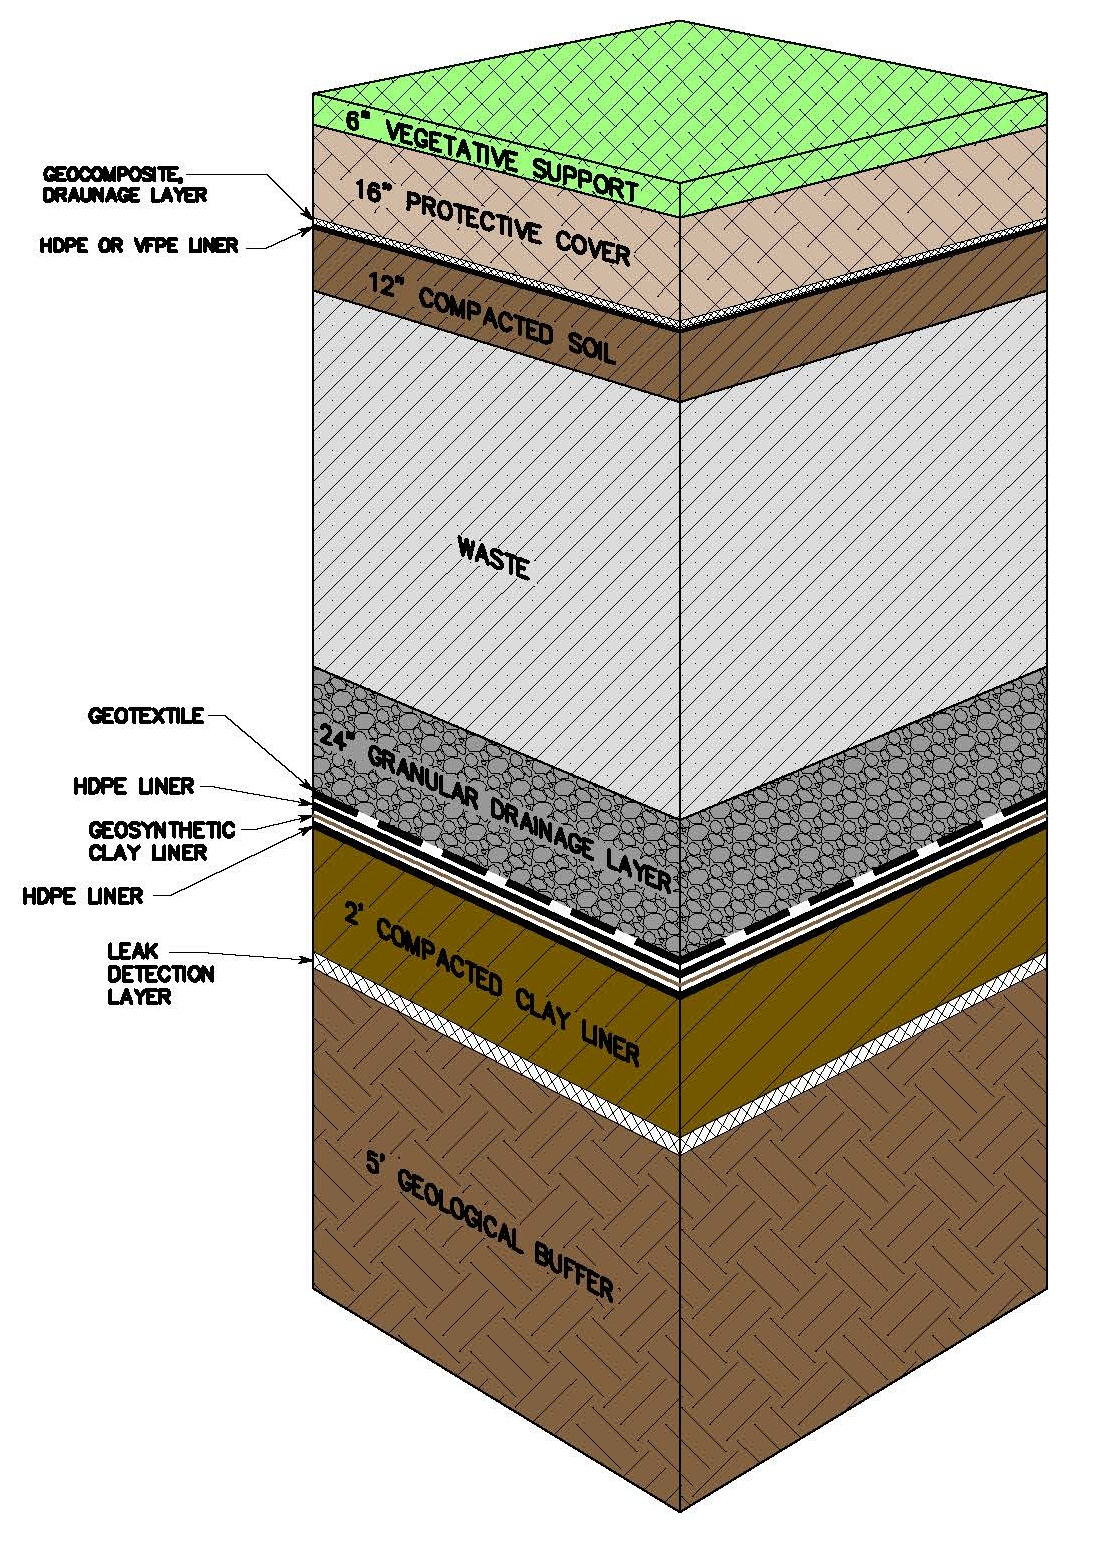 Landfill Diagram | Hoover Mason Recycling About Us